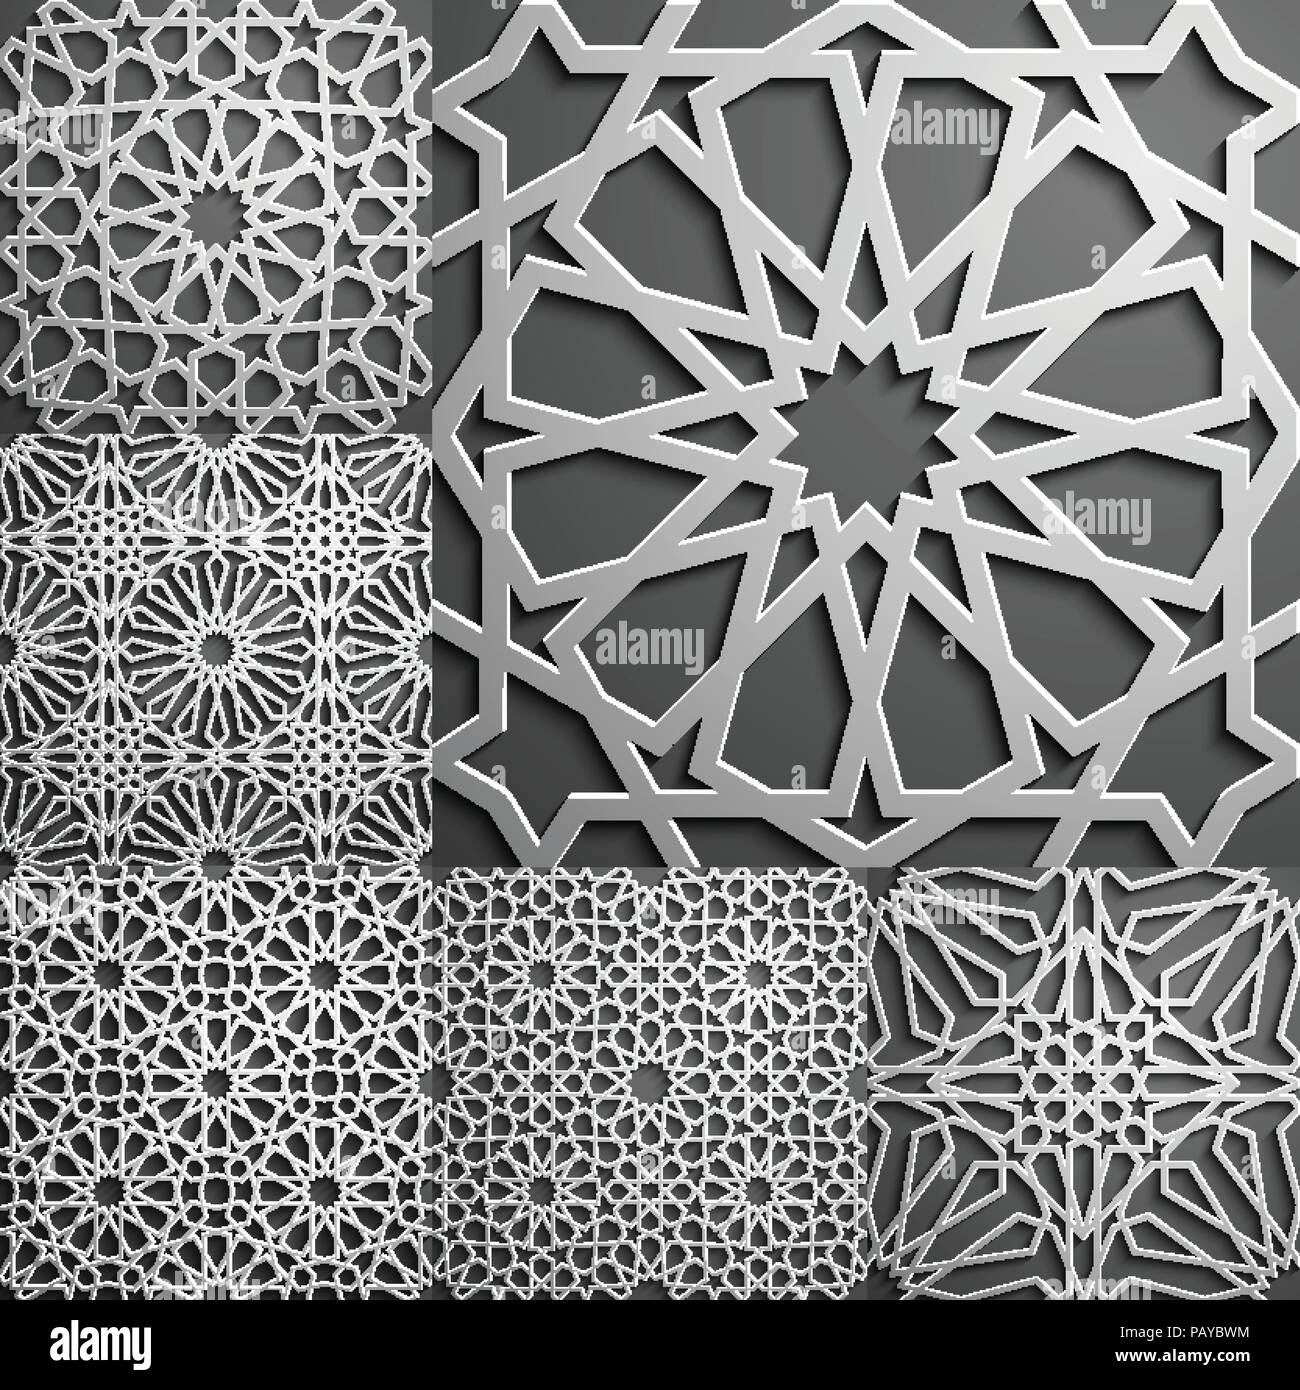 islamic pattern seamless arabic geometric pattern east ornament indian ornament persian motif 3d endless texture can be used for wallpaper pattern fills web page background PAYBWM